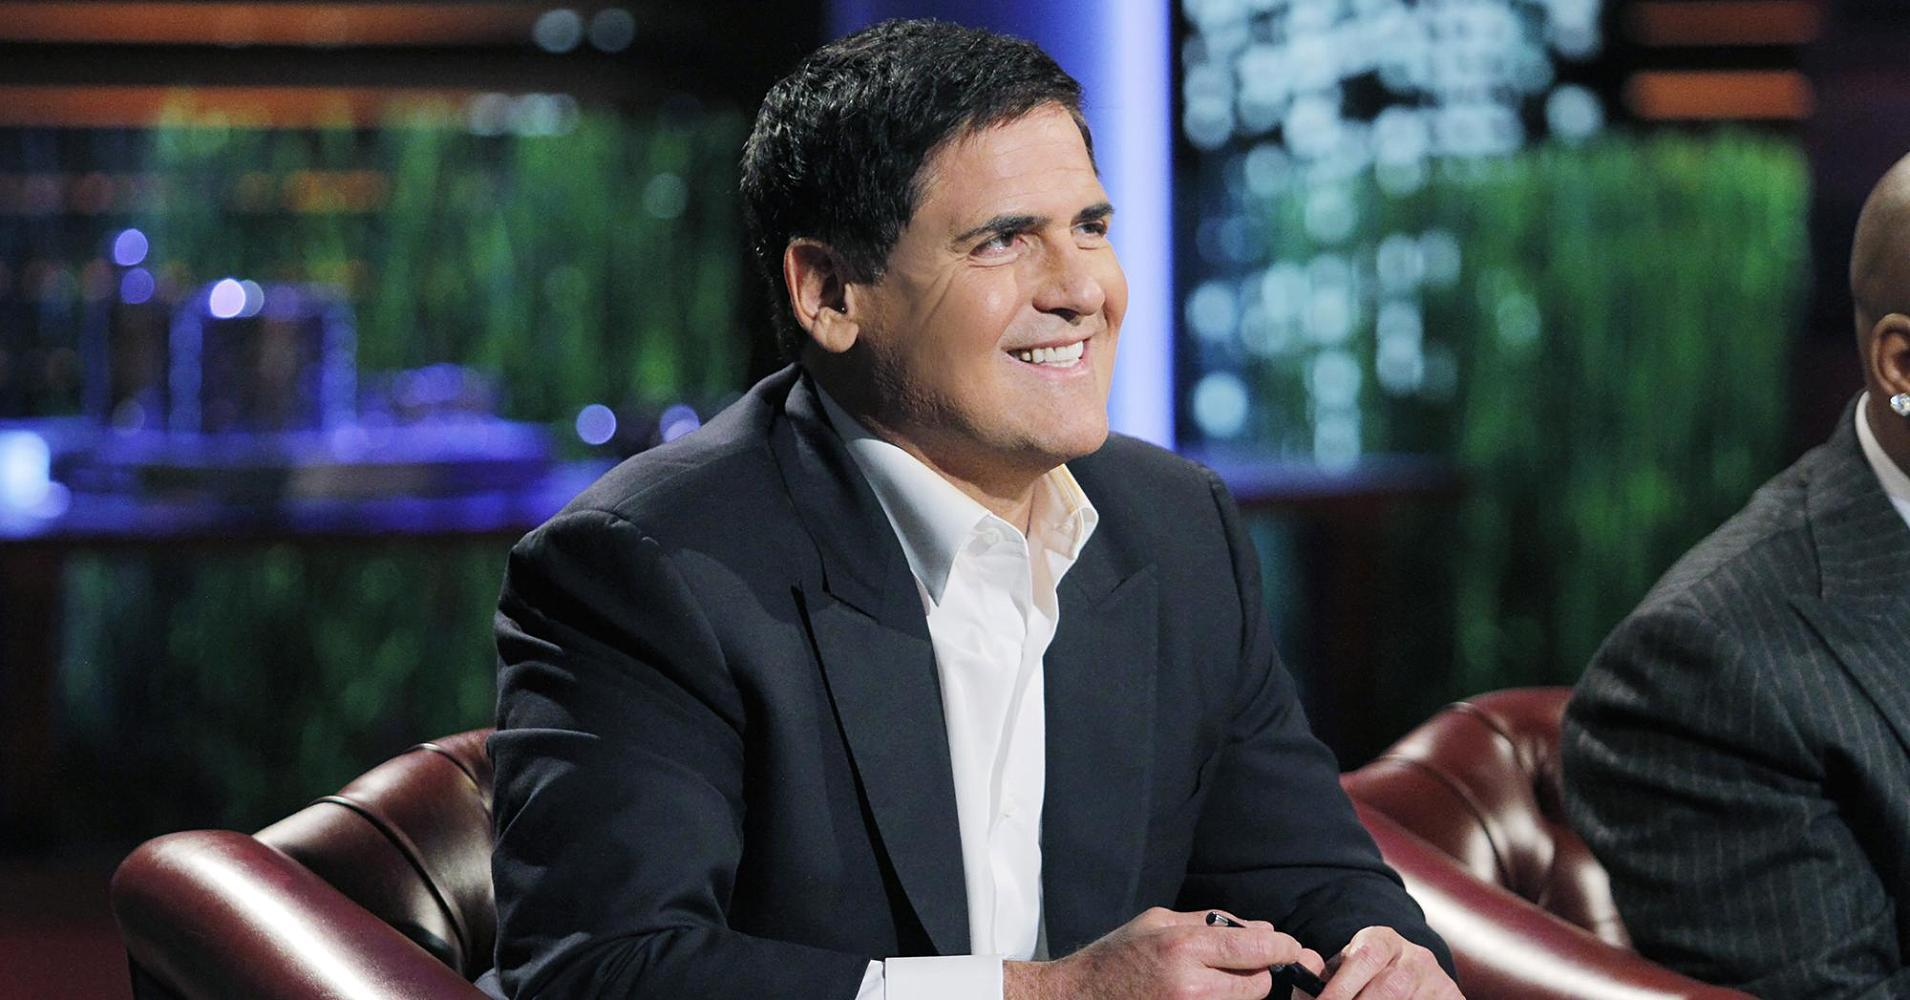 This is the next big thing according to Mark Cuban